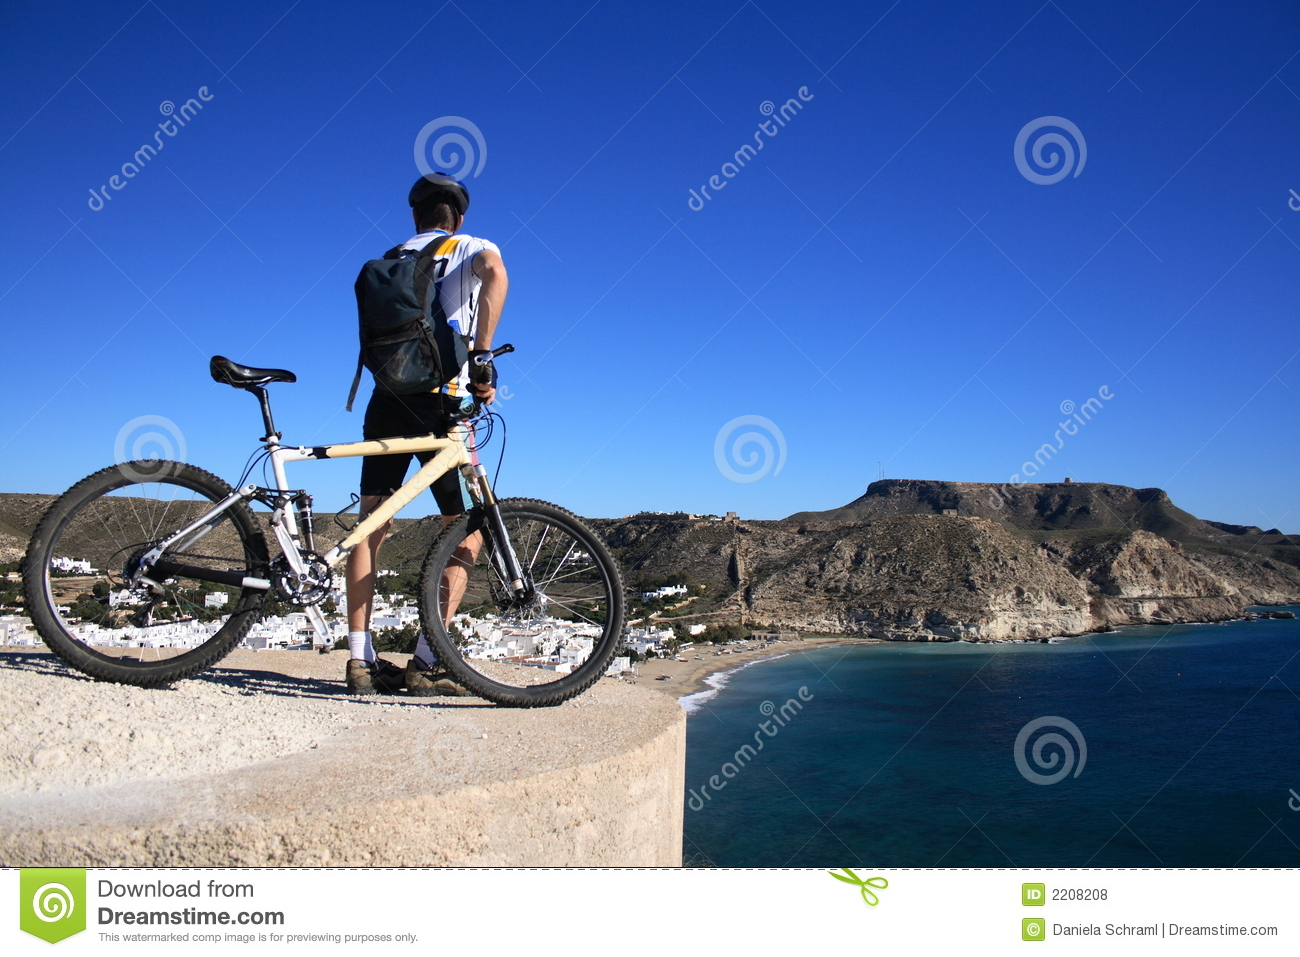 Cabo de gata som mountainbiking